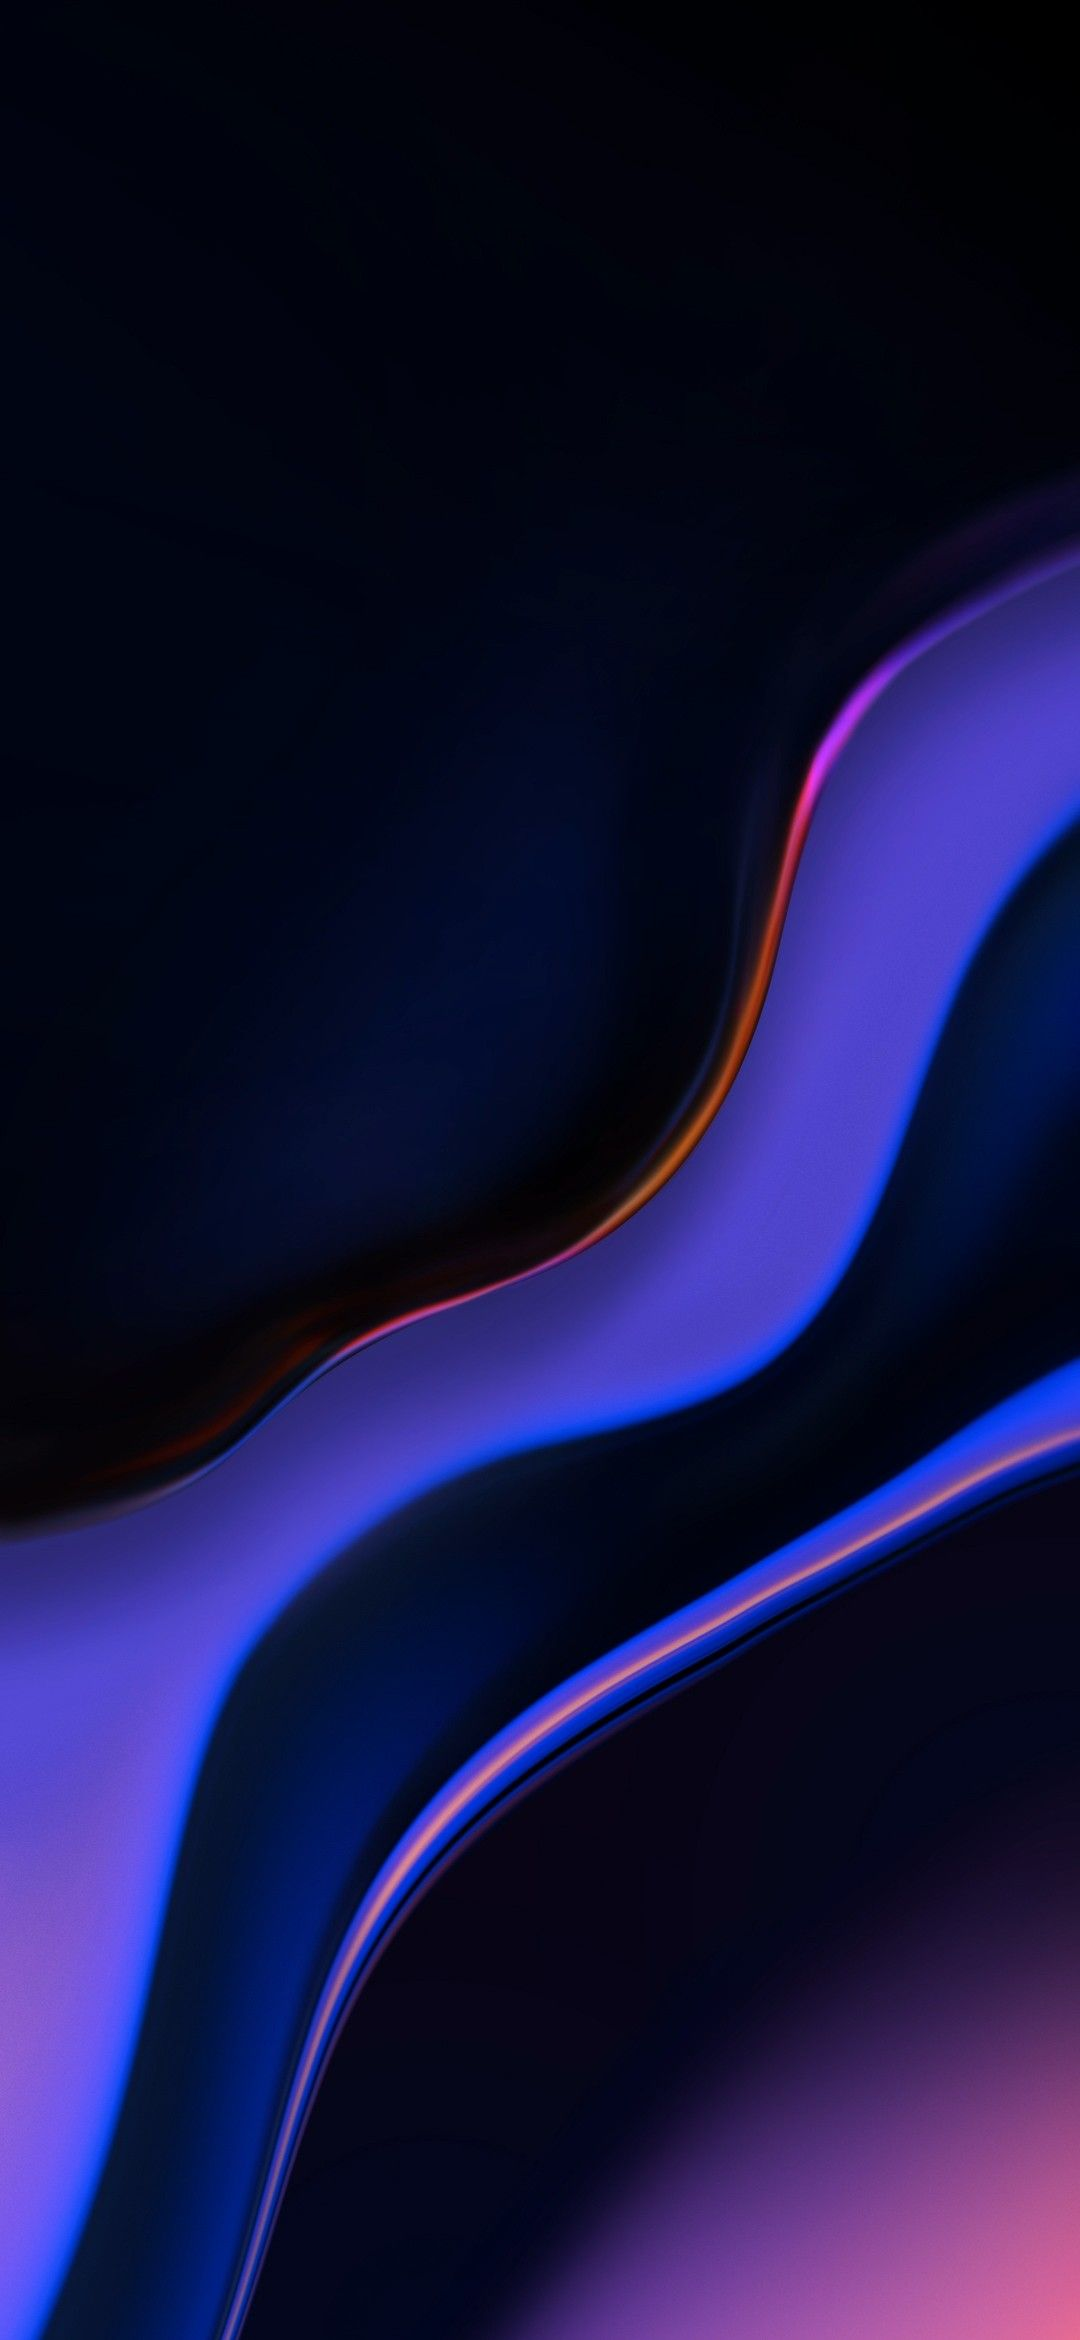 oneplus 6t abstract amoled liquid gradient in 2018 pinterest